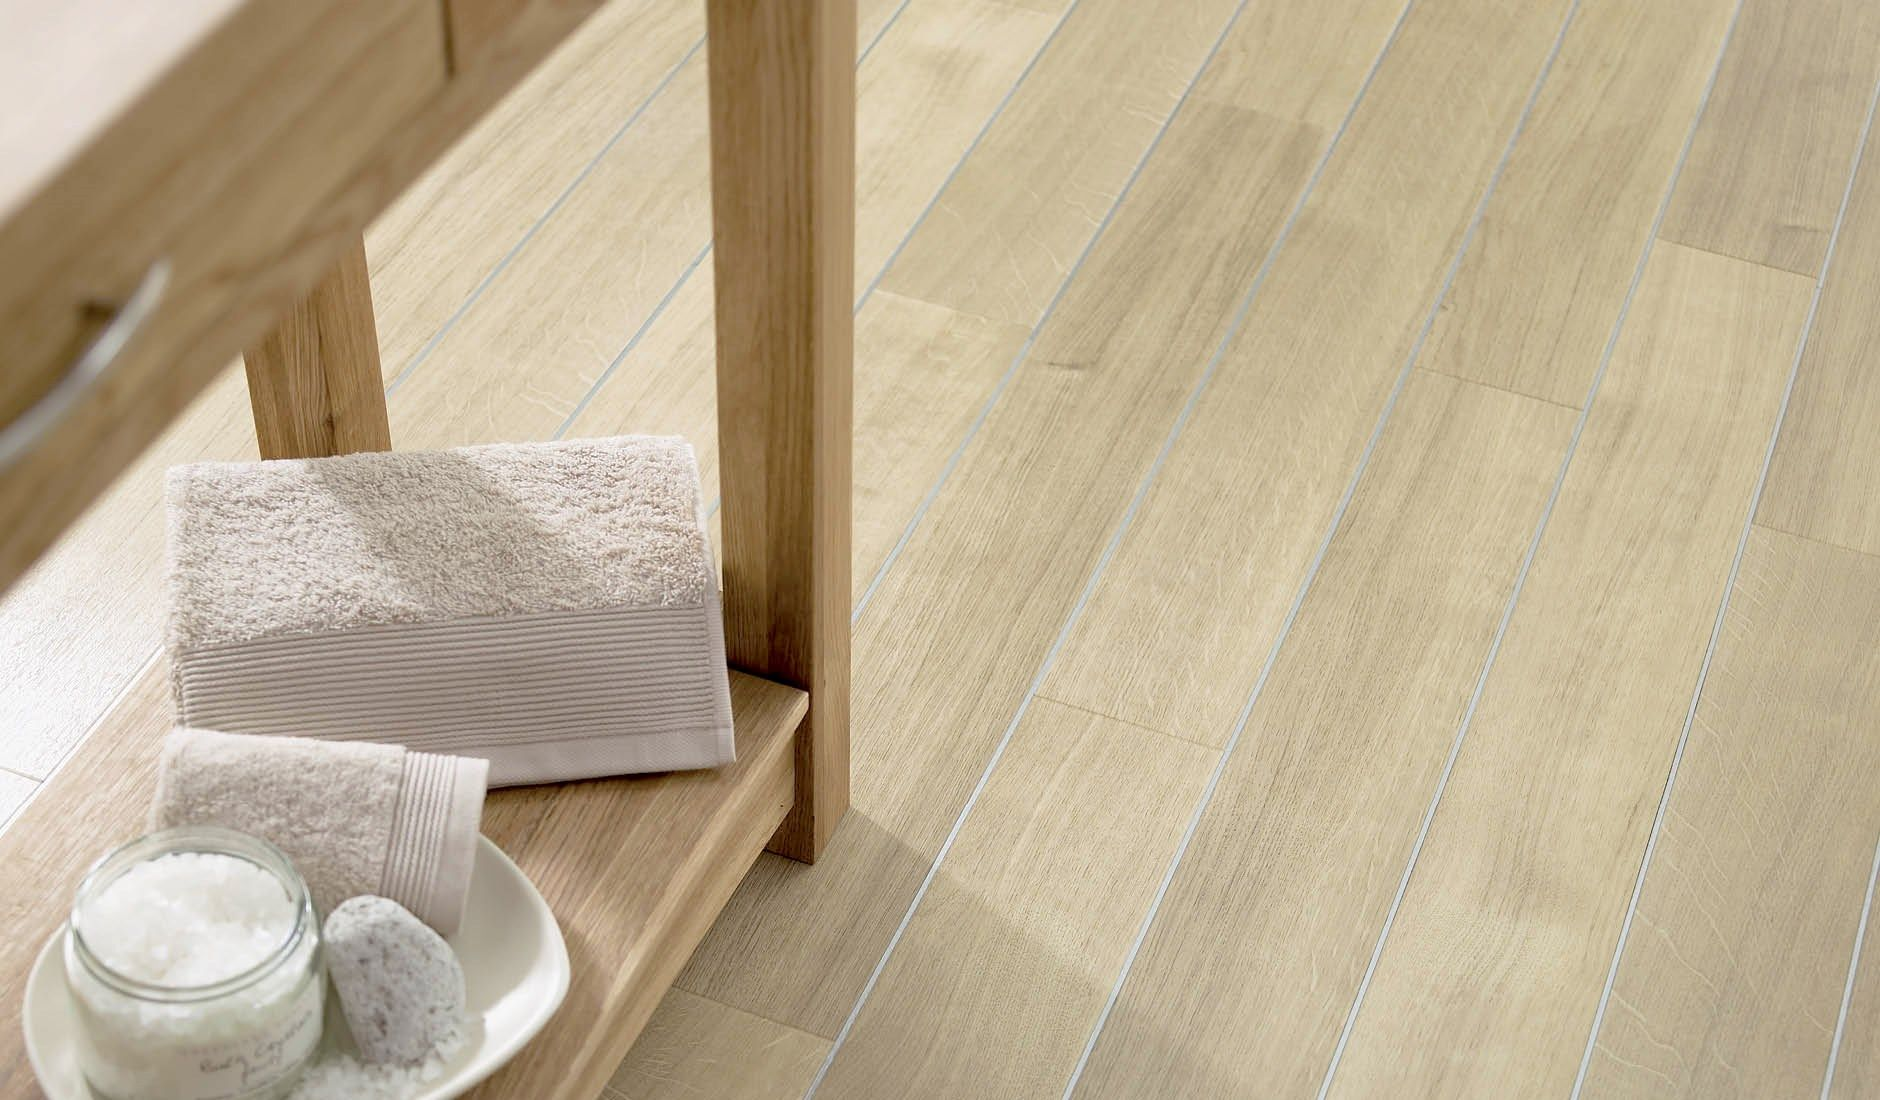 Types Of Flooring For Kitchens Wood Floor Spacia White Oak In A Bathroom Flooring Pinterest